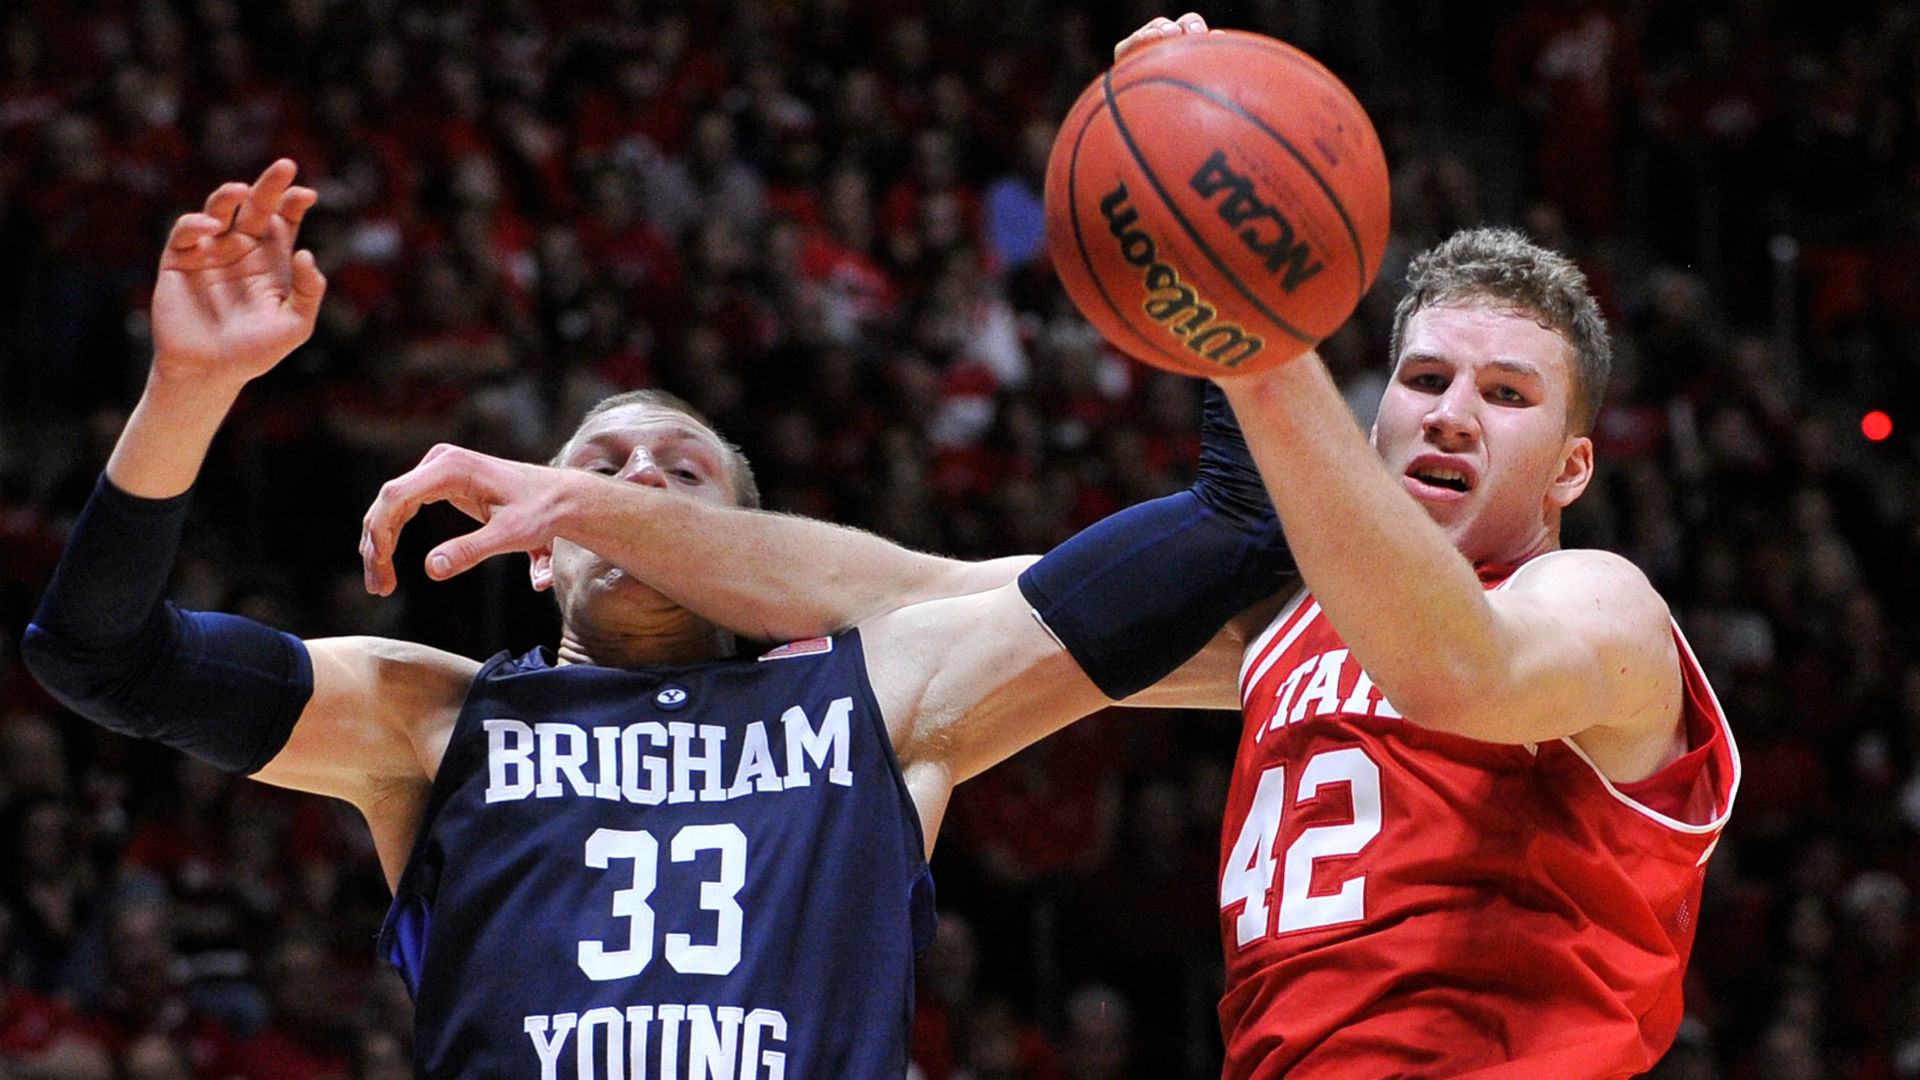 utah-byu-rivalry-ftr-getty-010716